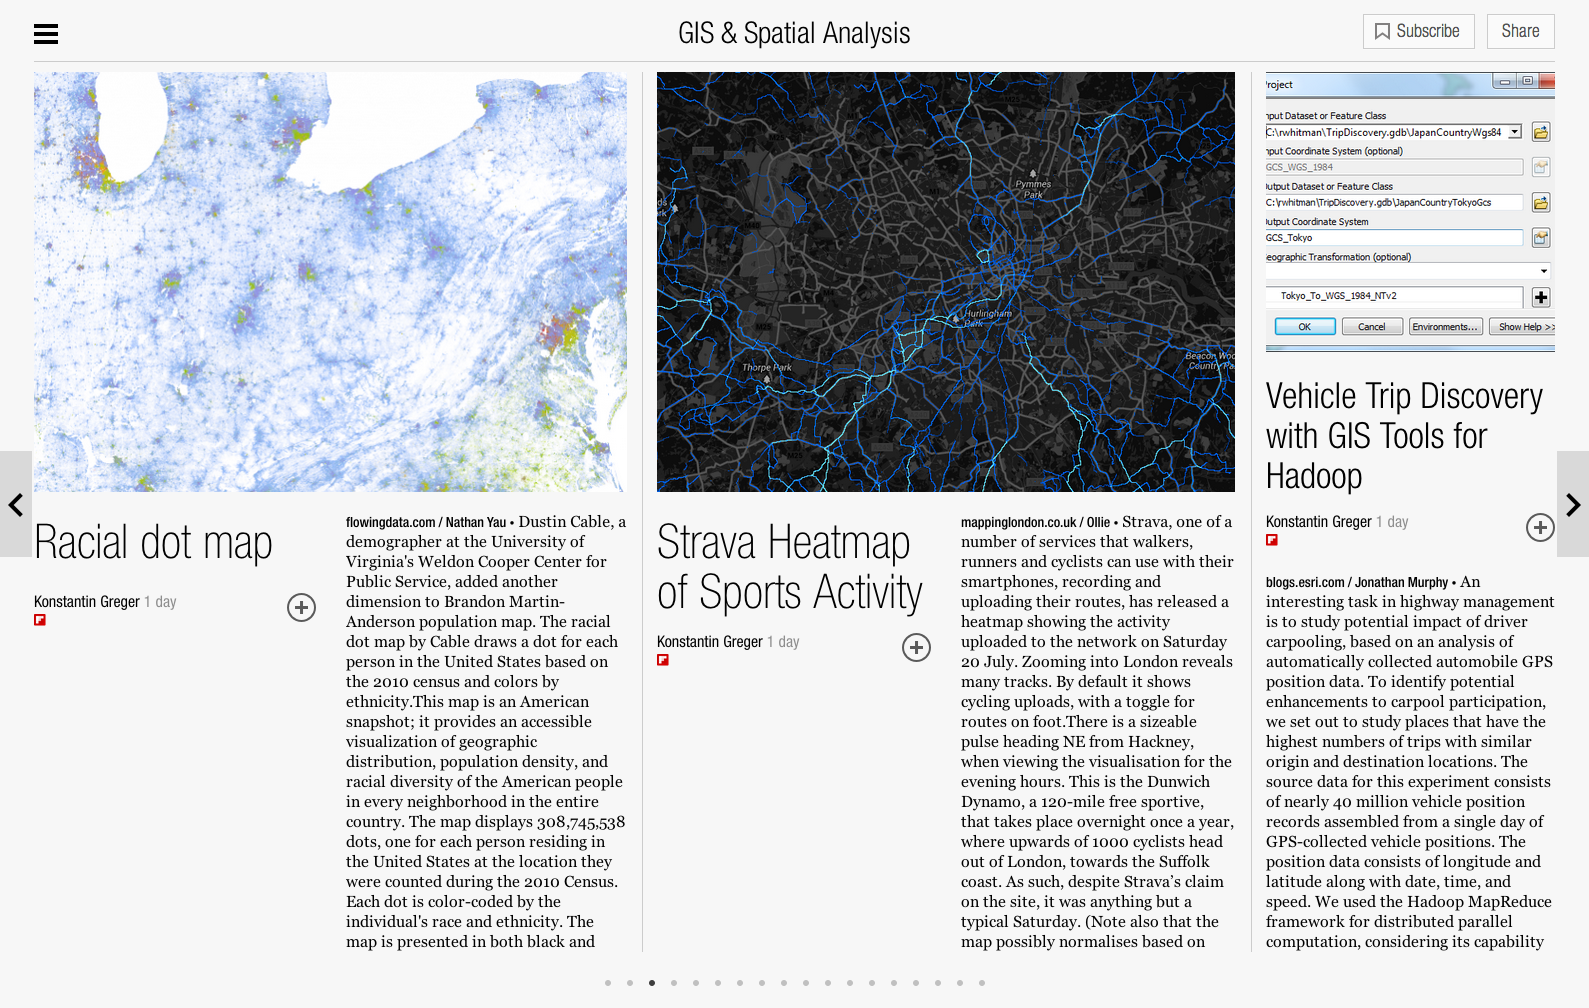 spatial analysis View spatial analysis research papers on academiaedu for free.